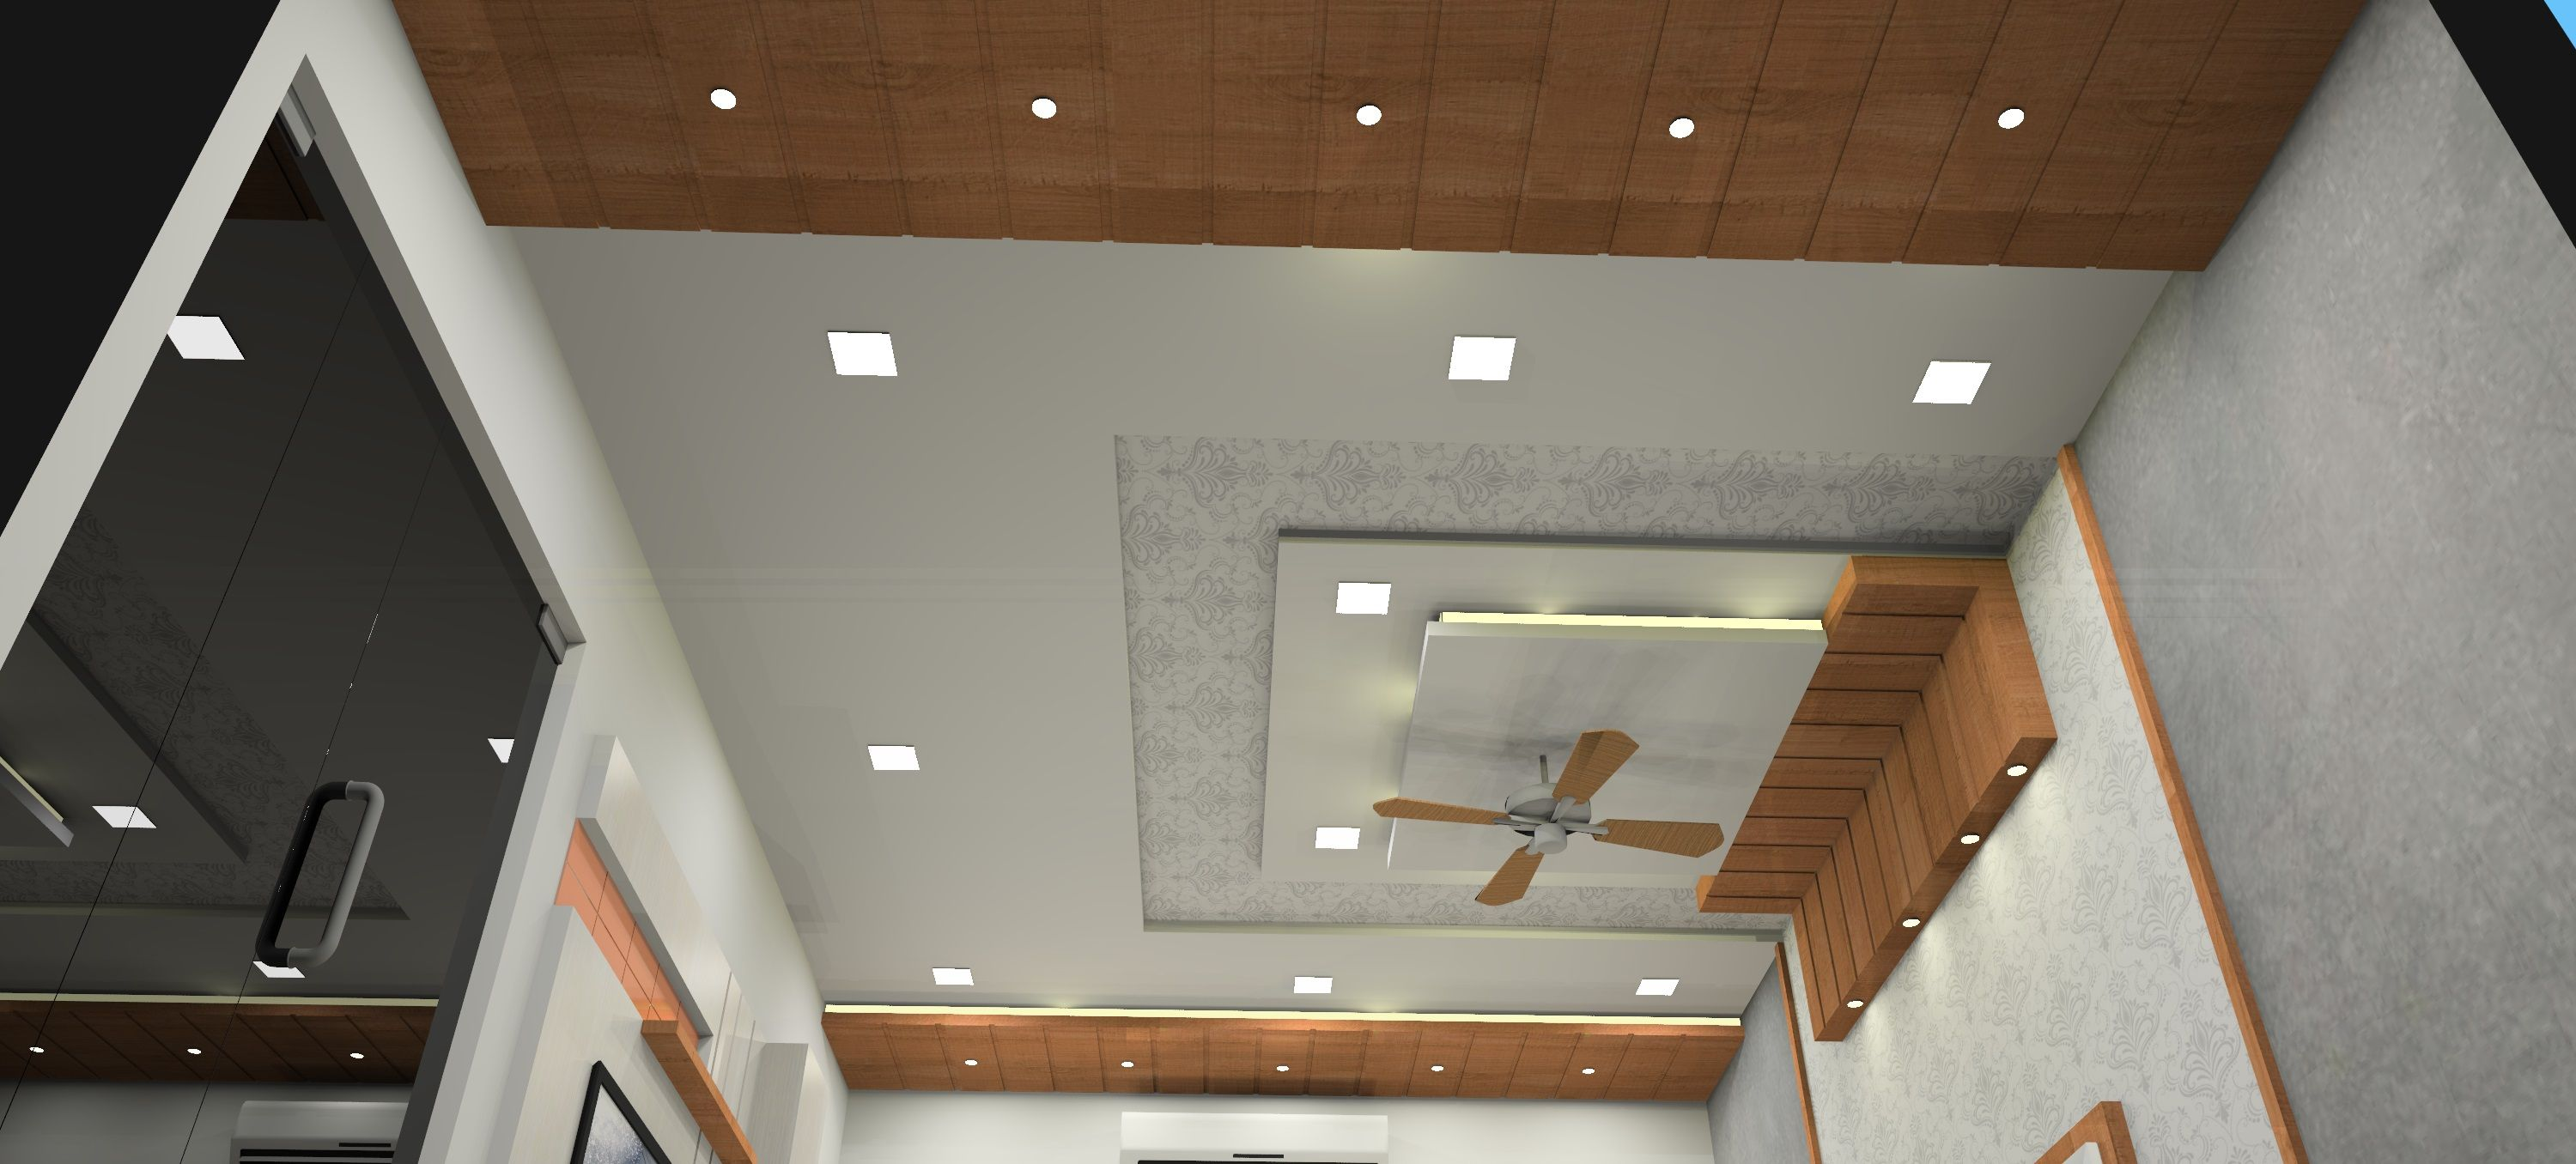 False Ceiling Design Celling Design In 2019 False